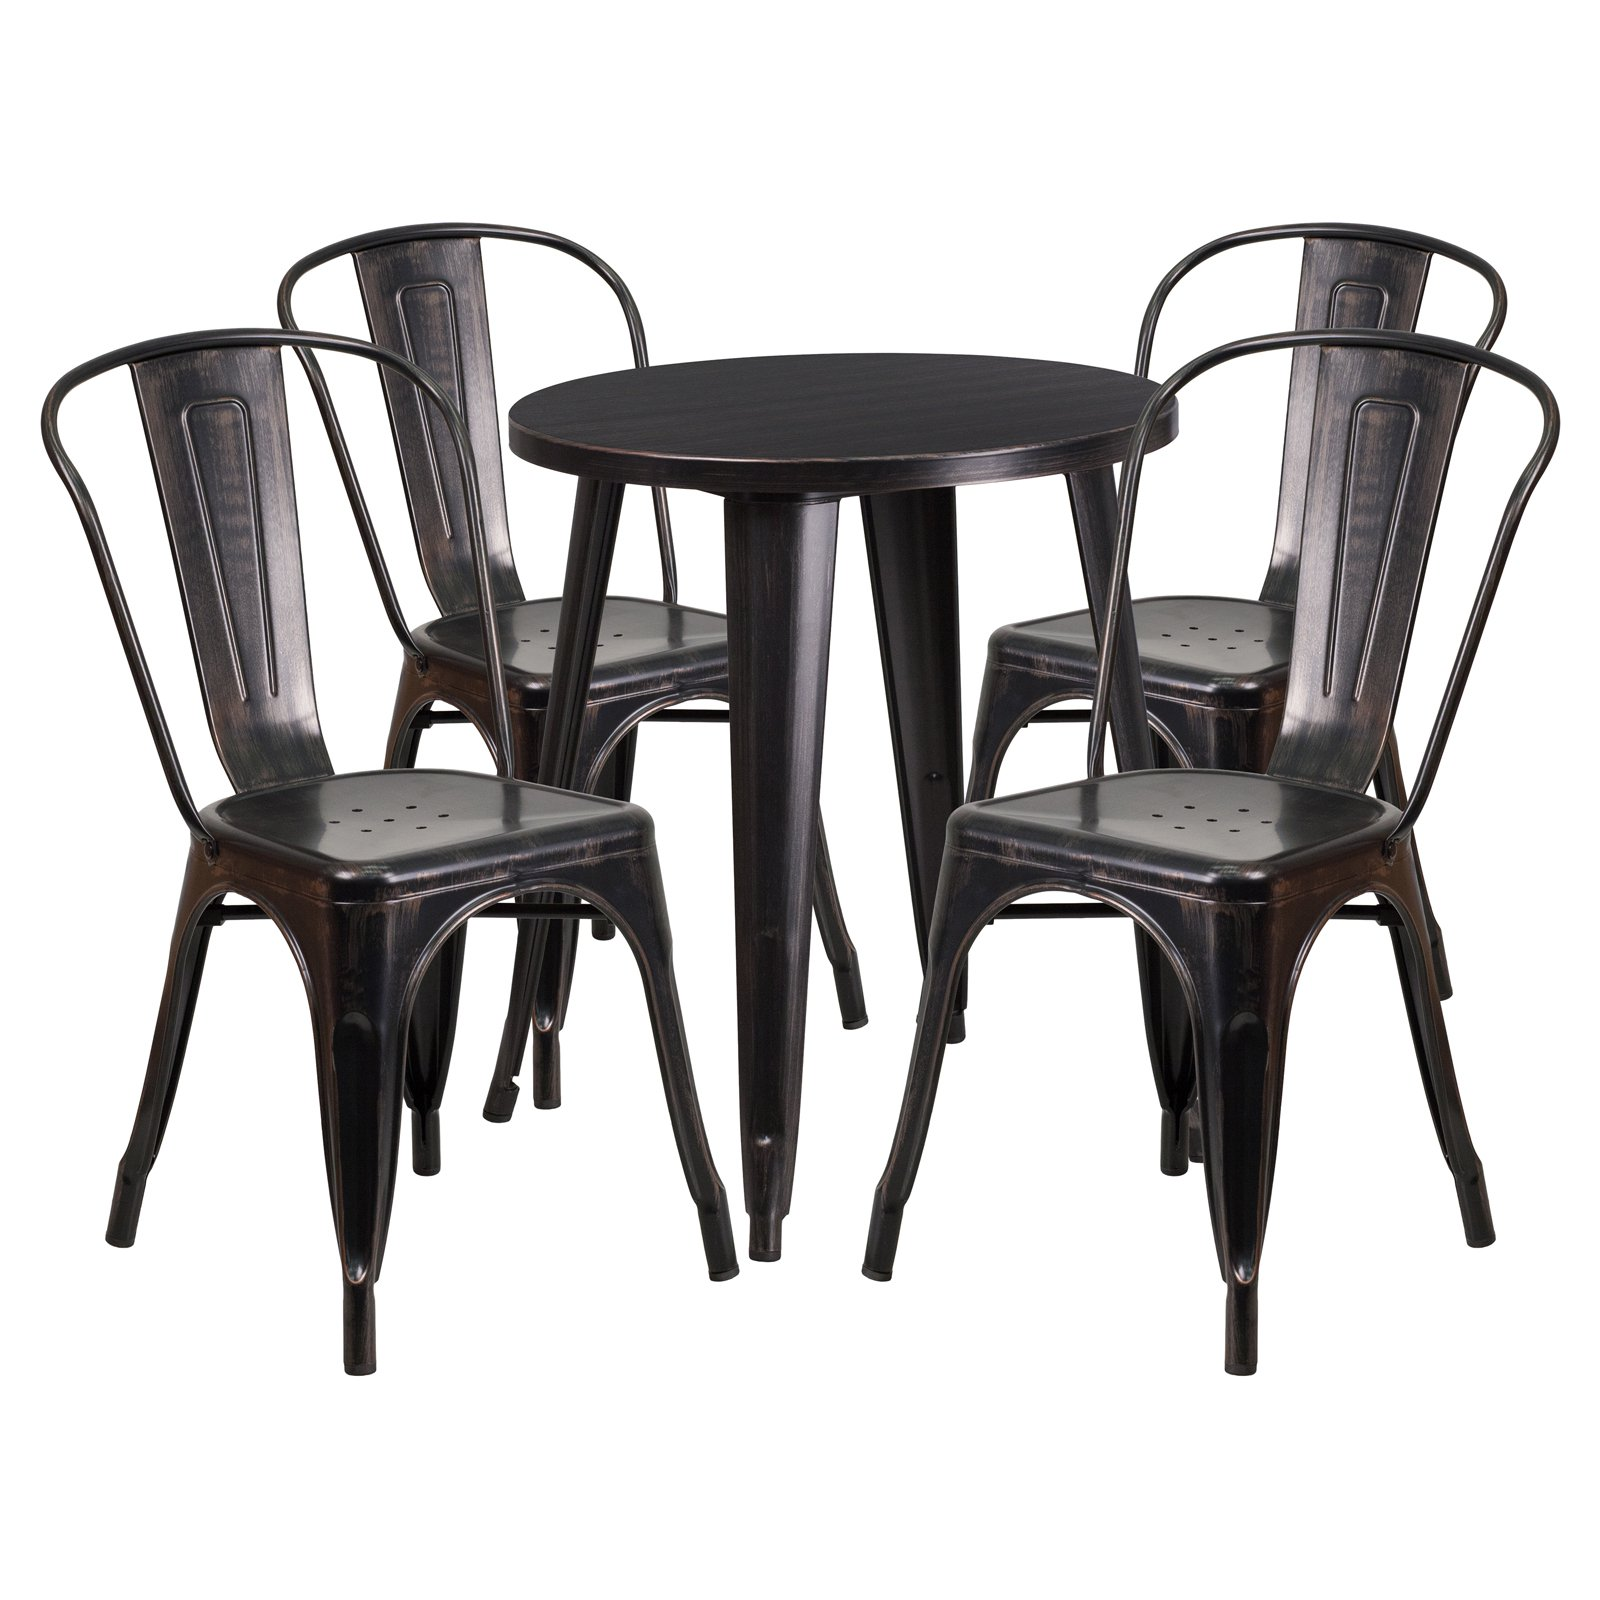 Flash Furniture 24'' Round Black-Antique Gold Metal Indoor-Outdoor Table Set with 4 Cafe Chairs